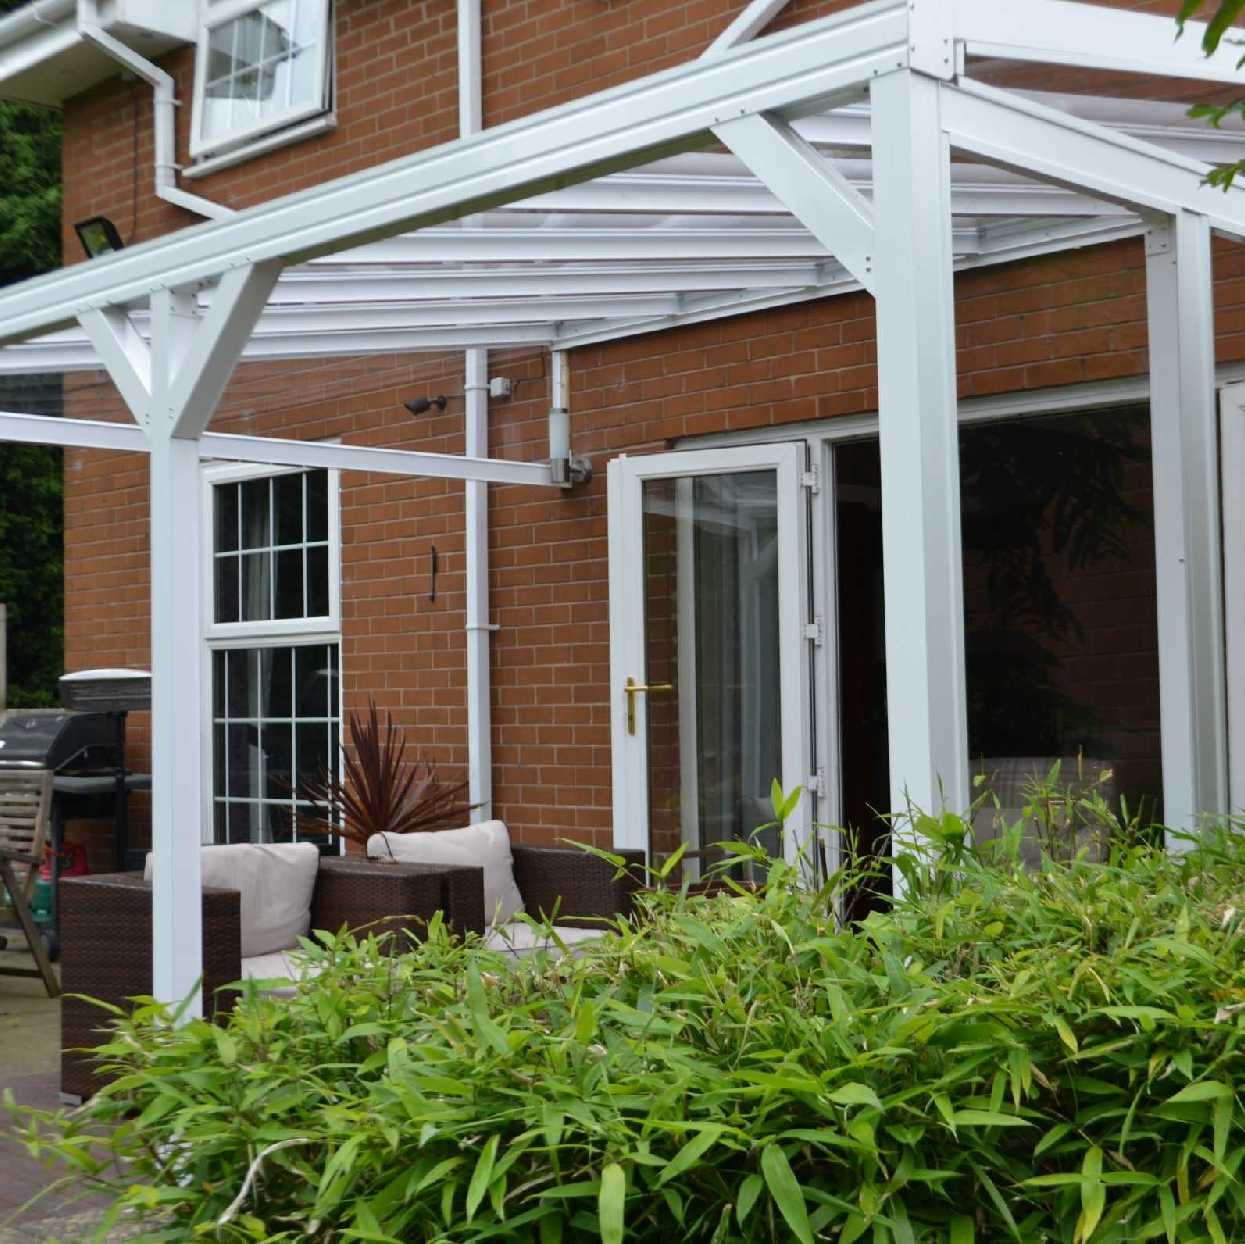 Omega Smart Lean-To Canopy UNGLAZED for 6mm Glazing - 5.6m (W) x 3.5m (P), (3) Supporting Posts from Omega Build